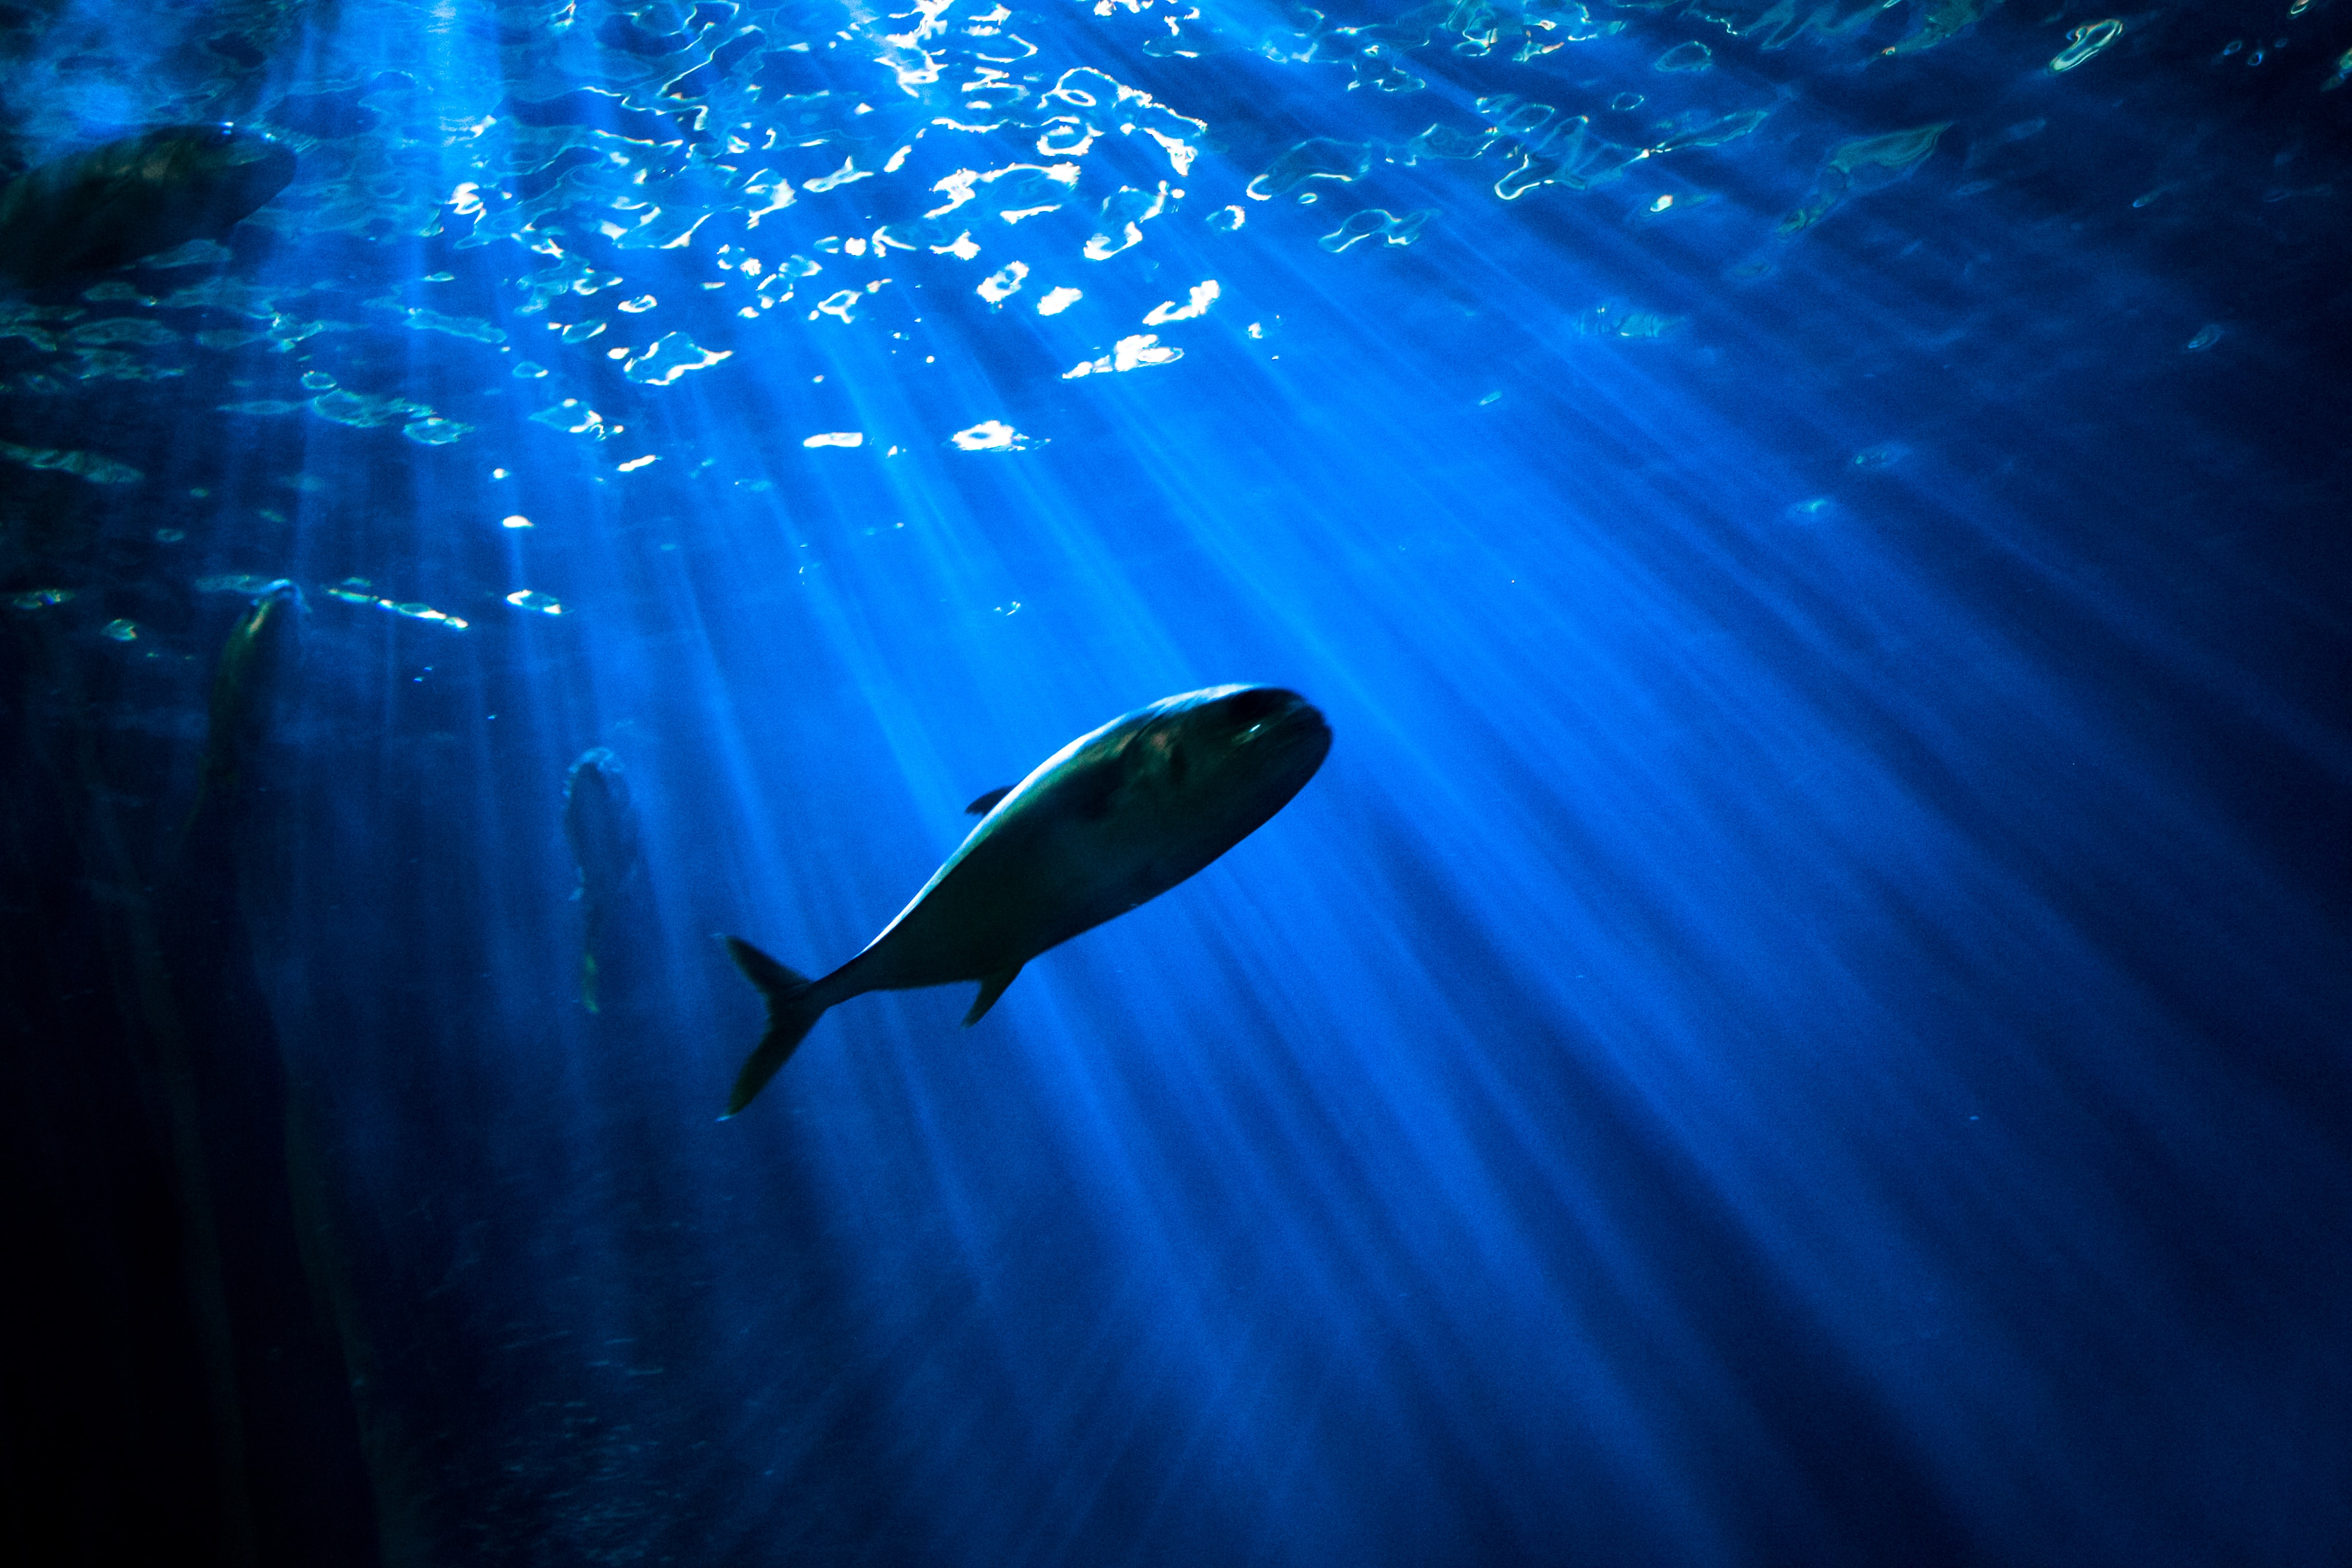 fish under body of water